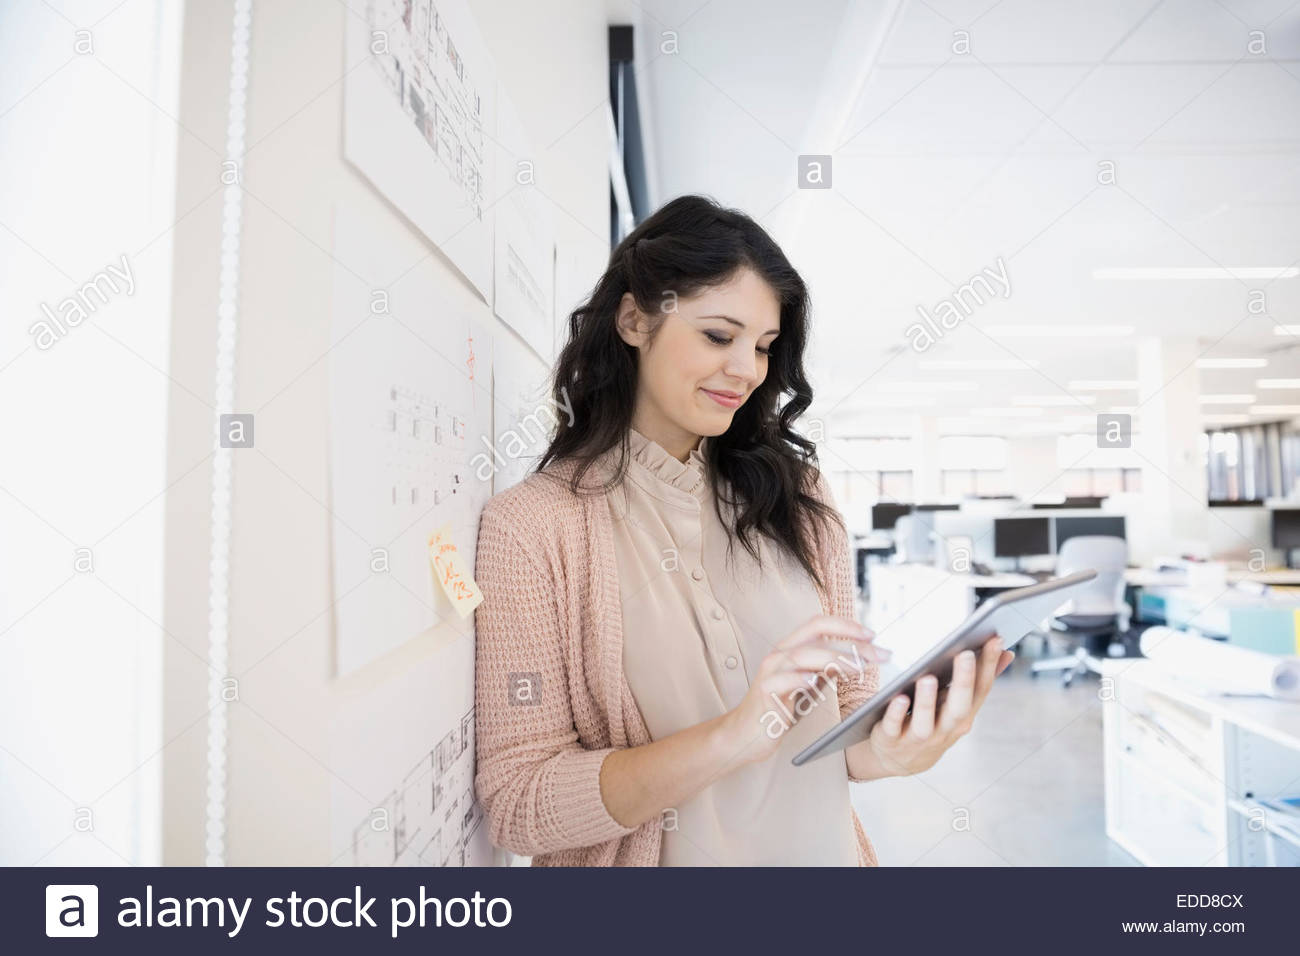 Smiling architect using digital tablet at wall - Stock Image